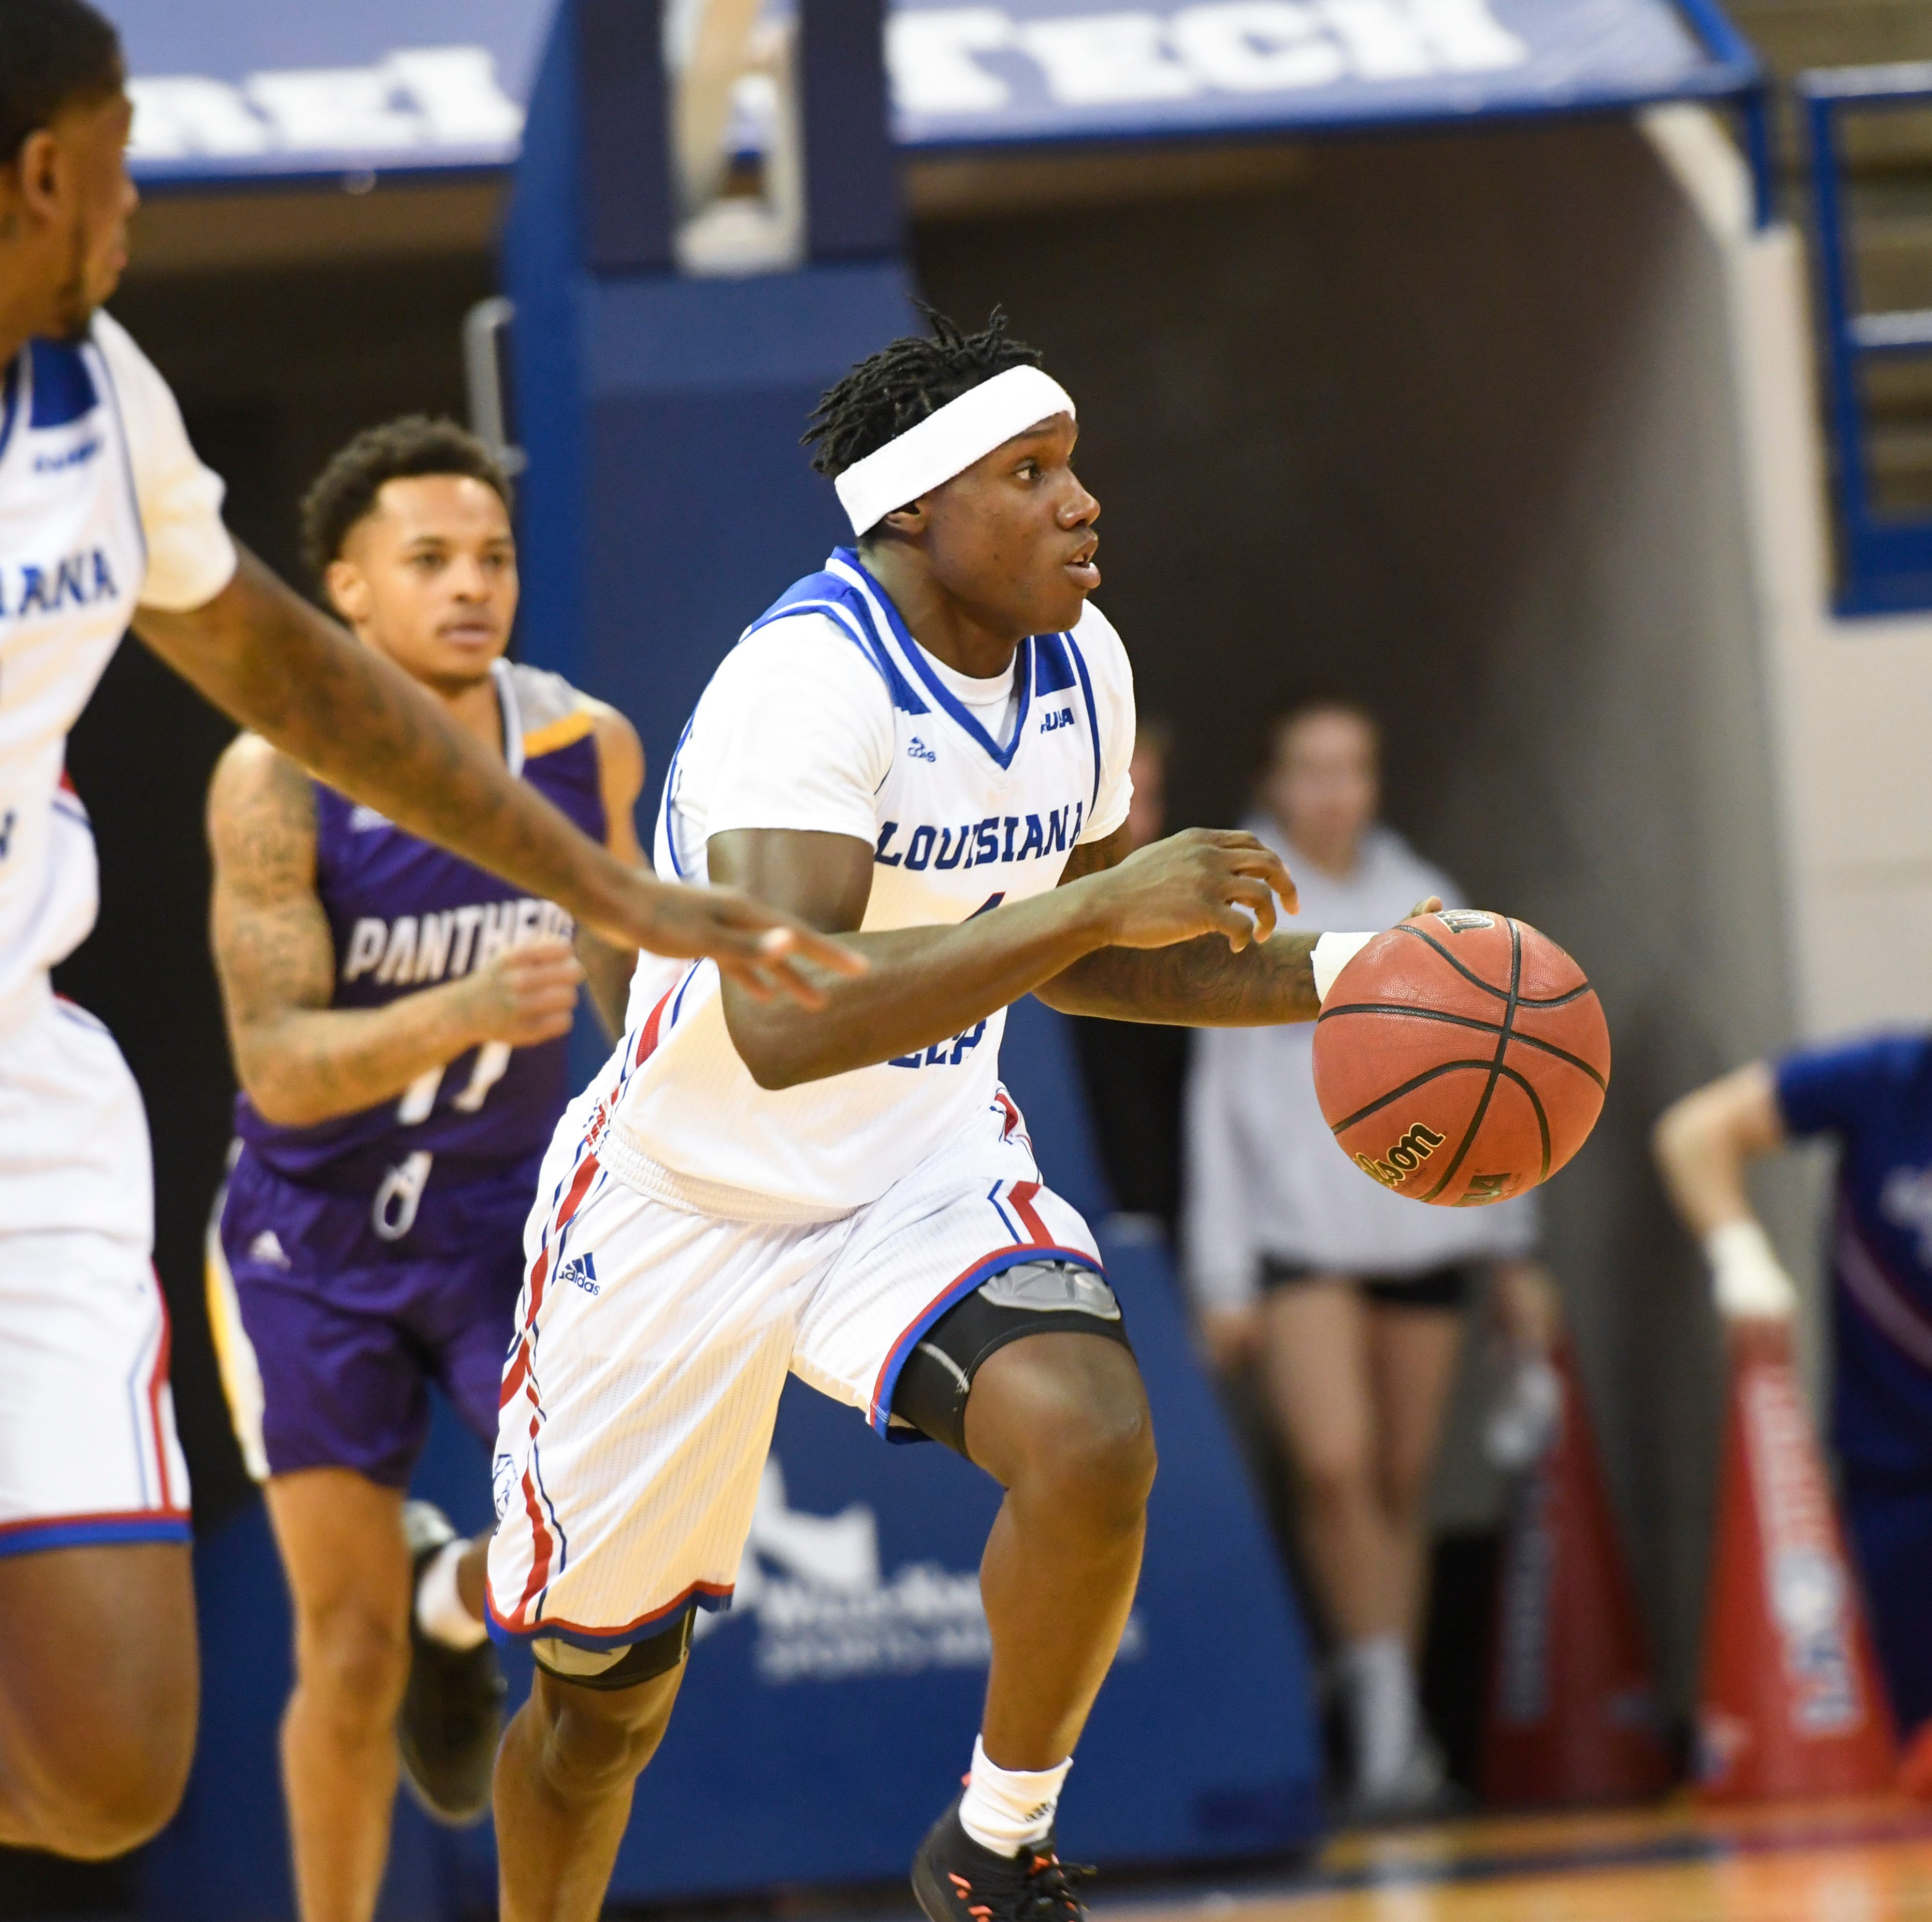 DaQuan Bracey, Derric Jean lead Louisiana Tech past Prairie View